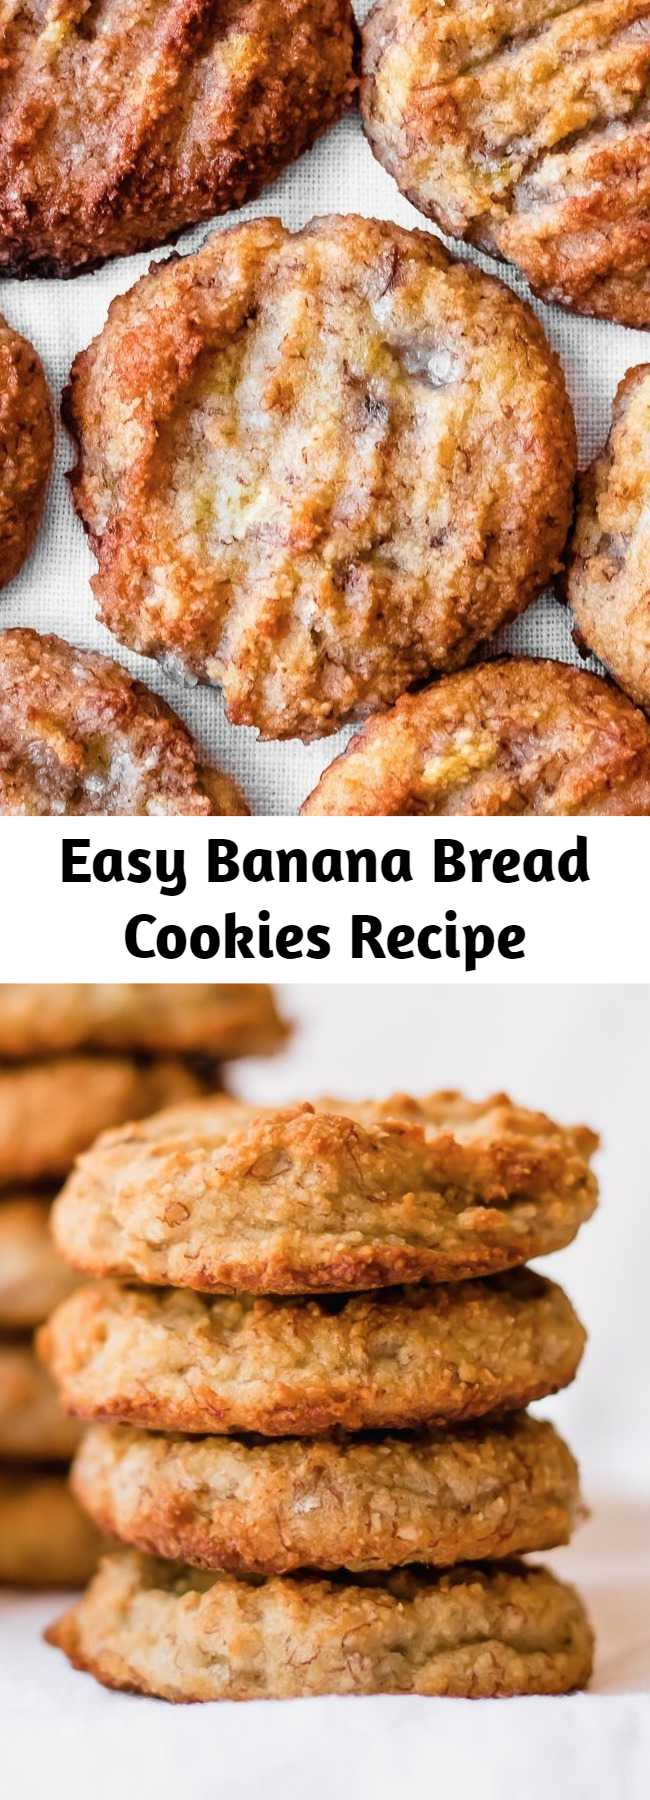 Easy Banana Bread Cookies Recipe - Banana bread cookies are a delicious and healthy treat the whole family will enjoy. These banana bread cookies are gluten free, vegan, paleo, and full of banana flavor - with just a hint of cinnamon. You'll love this EASY banana bread cookie recipe! It's naturally sweetened, moist, and healthy. Don't forget to pin this to your paleo banana recipes board! #glutenfree #bananas #paleo #vegan #healthy #healthytreats #cookies #bananacookies #bananabread #dairyfree